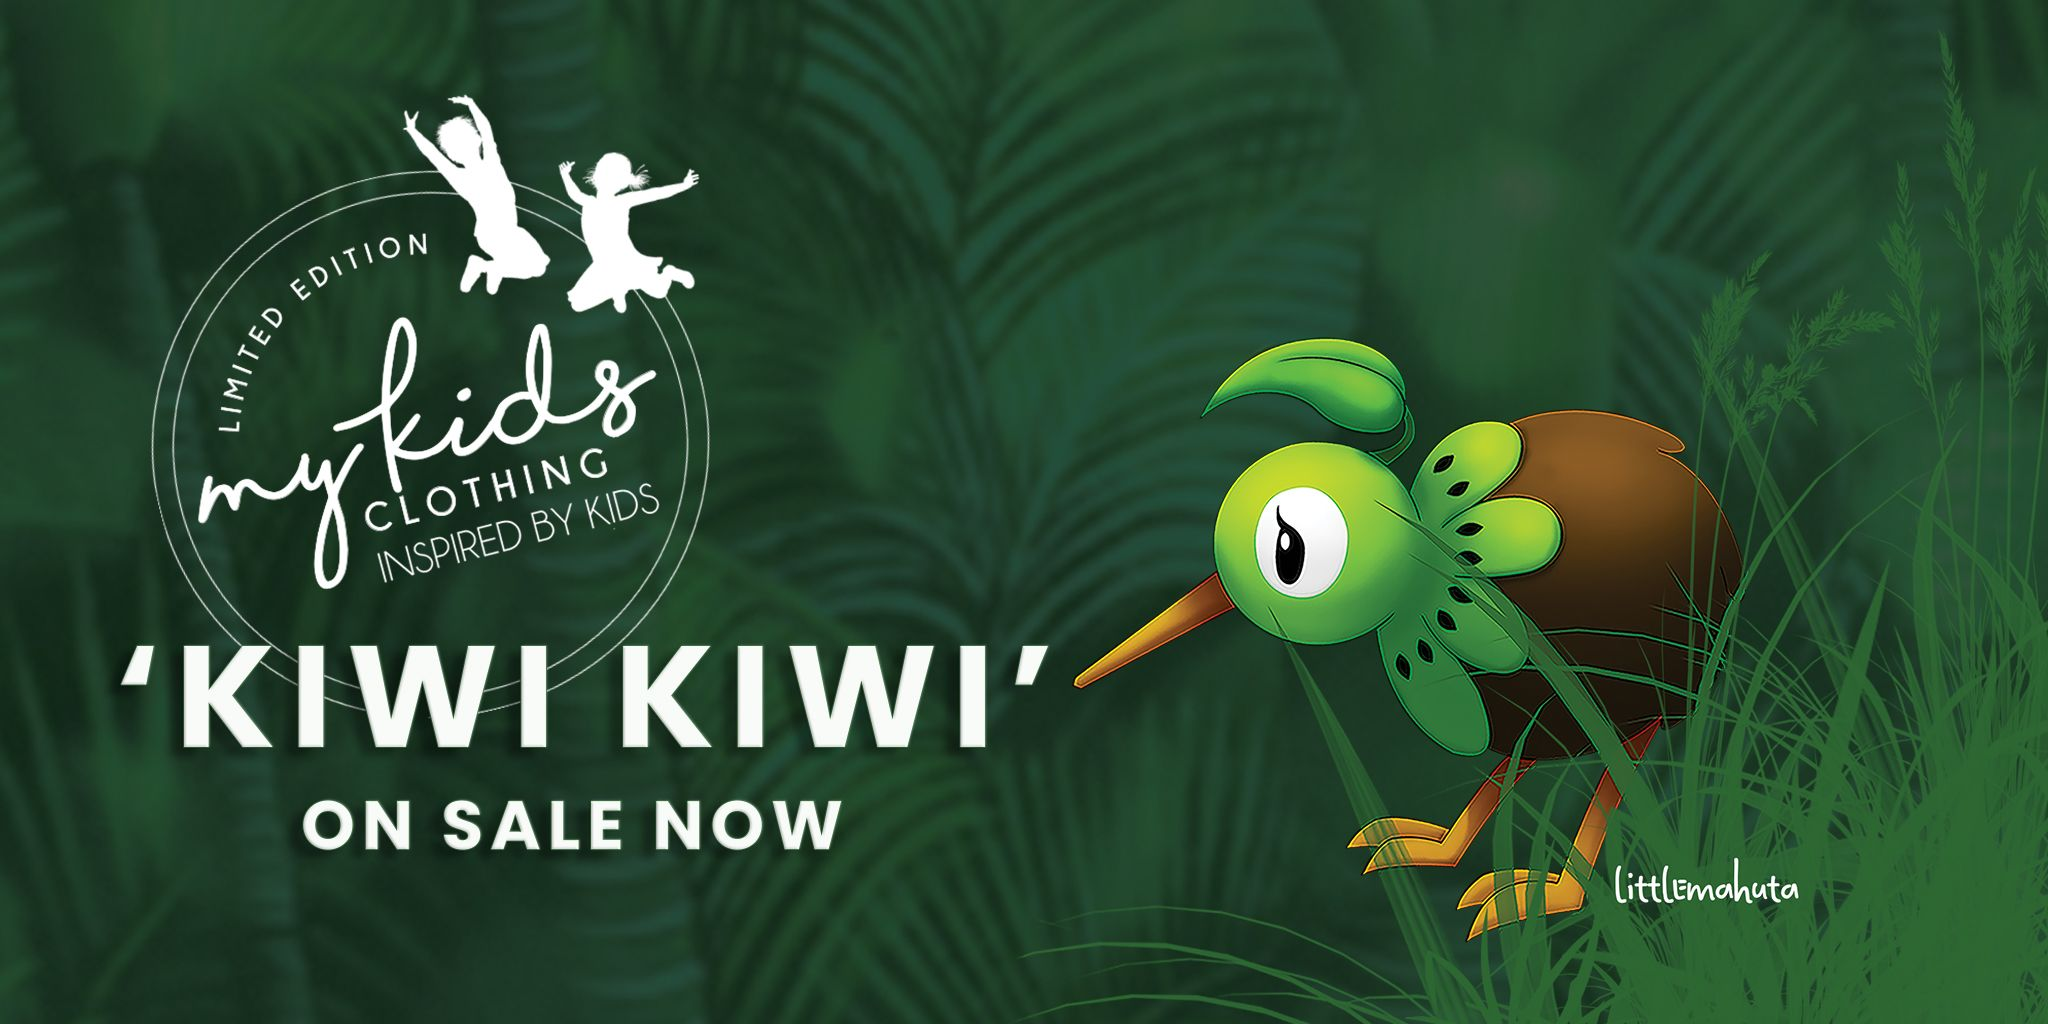 Littlemahuta has teamed up with My Kids Clothing to produce another addition to the 'Inspired By Kids' Line. You can purchase KiwiKiwi Tees by visiting   www.mykidsclothing.co.nz     Meet KiwiKiwi, a friendly little bird for our Kiwi Kids, made from a kiwi fruit. KiwiKiwi wanders our New Zealand Native Bush and is a friendly face for all those who he encounters. Our KiwiKiwi assures us that we are always in the right spot and that everyone he meets is welcome in our beautiful country.  A My Kids Clothing/Littlemahuta Collaboration. The newest addition to the 'Inspired by Kids' range.